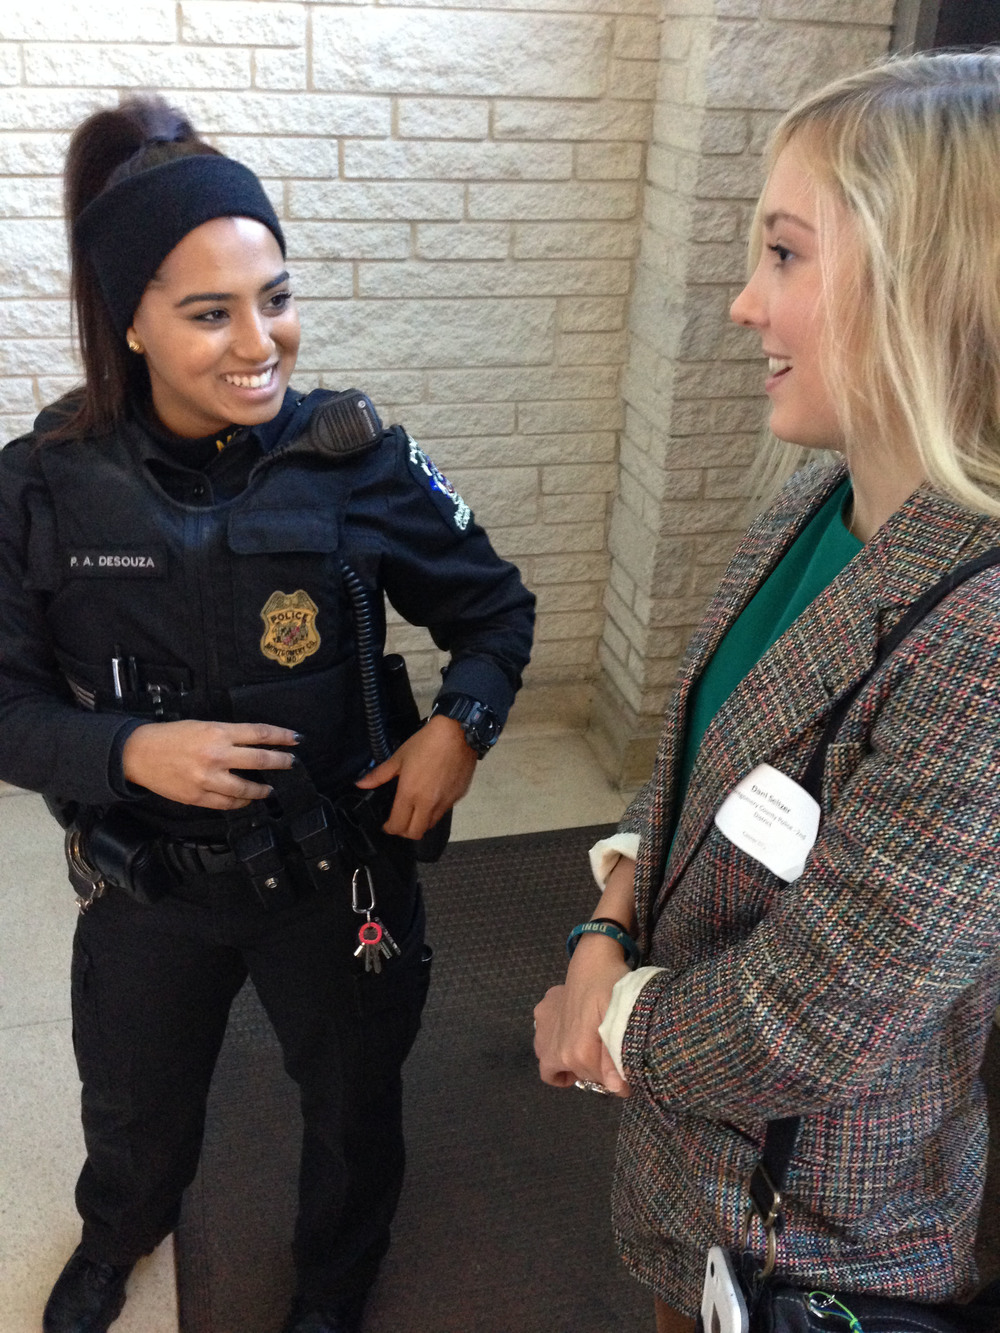 Montgomery County Officer Patty Desouza shows her bulletproof vest and other standard gear to Dani Seltzer, 17, a Bethesda-Chevy Chase High School student. Dani was meeting police as part of the school's job shadow day. (Bettina Lanyi/FOR THE WASHINGTON POST)